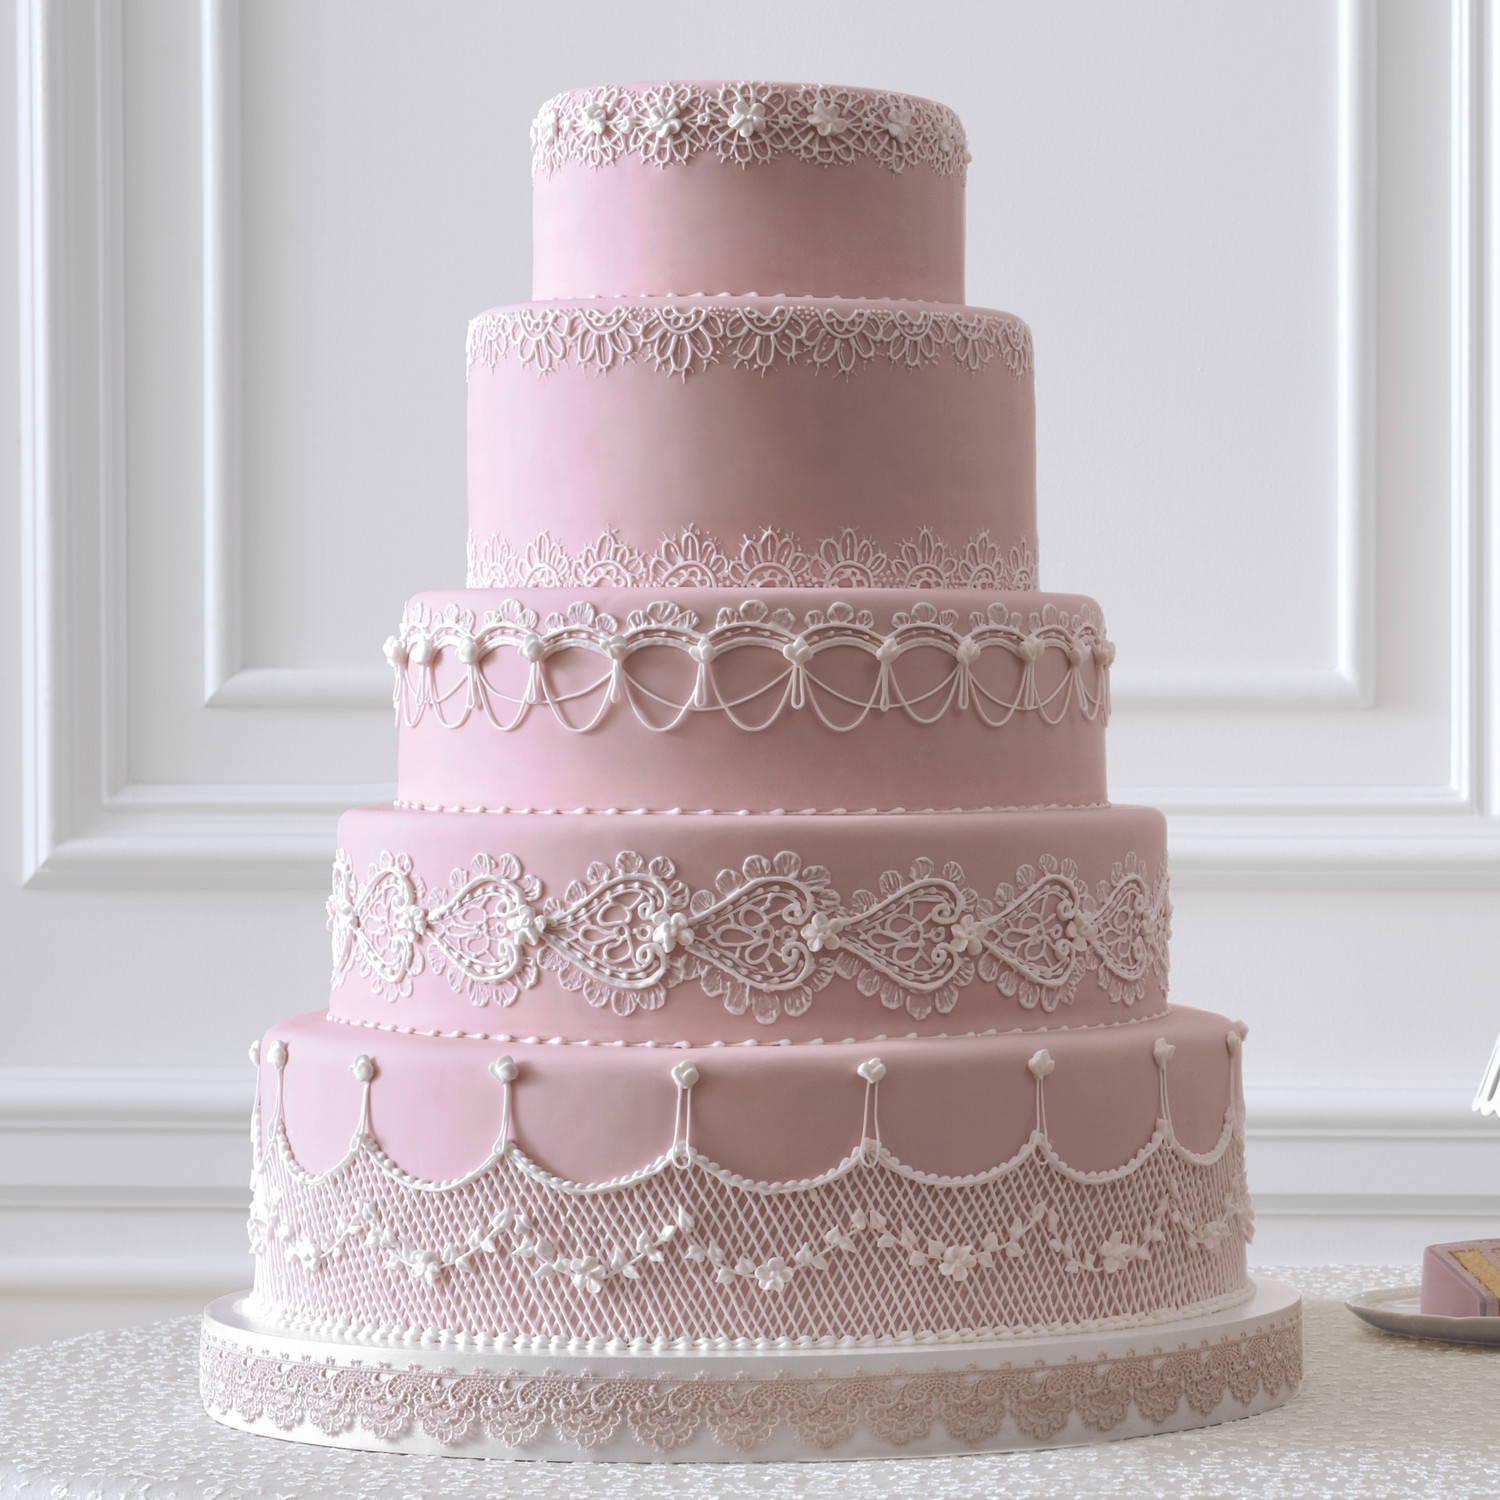 Wedding Cakes: The Masters Of The Wedding Cake